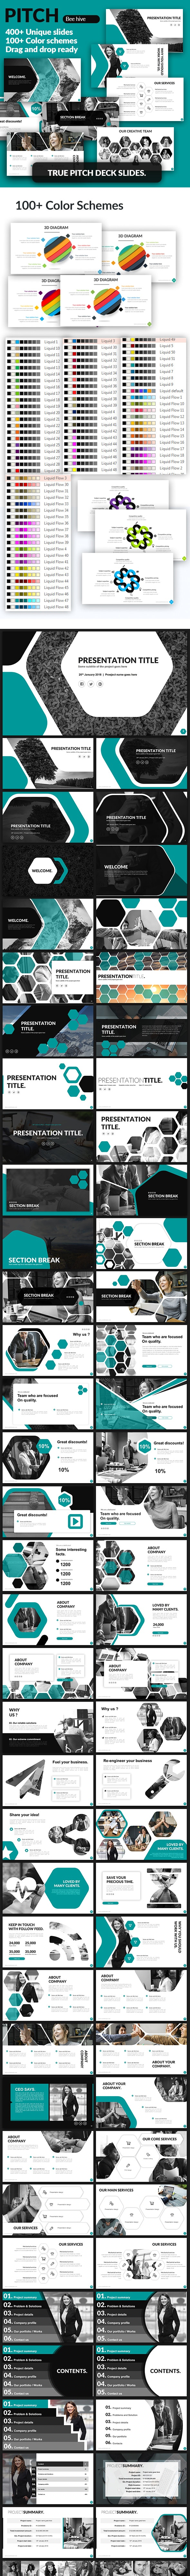 Bee Hive - Pitch Deck Presentation Template - Pitch Deck PowerPoint Templates